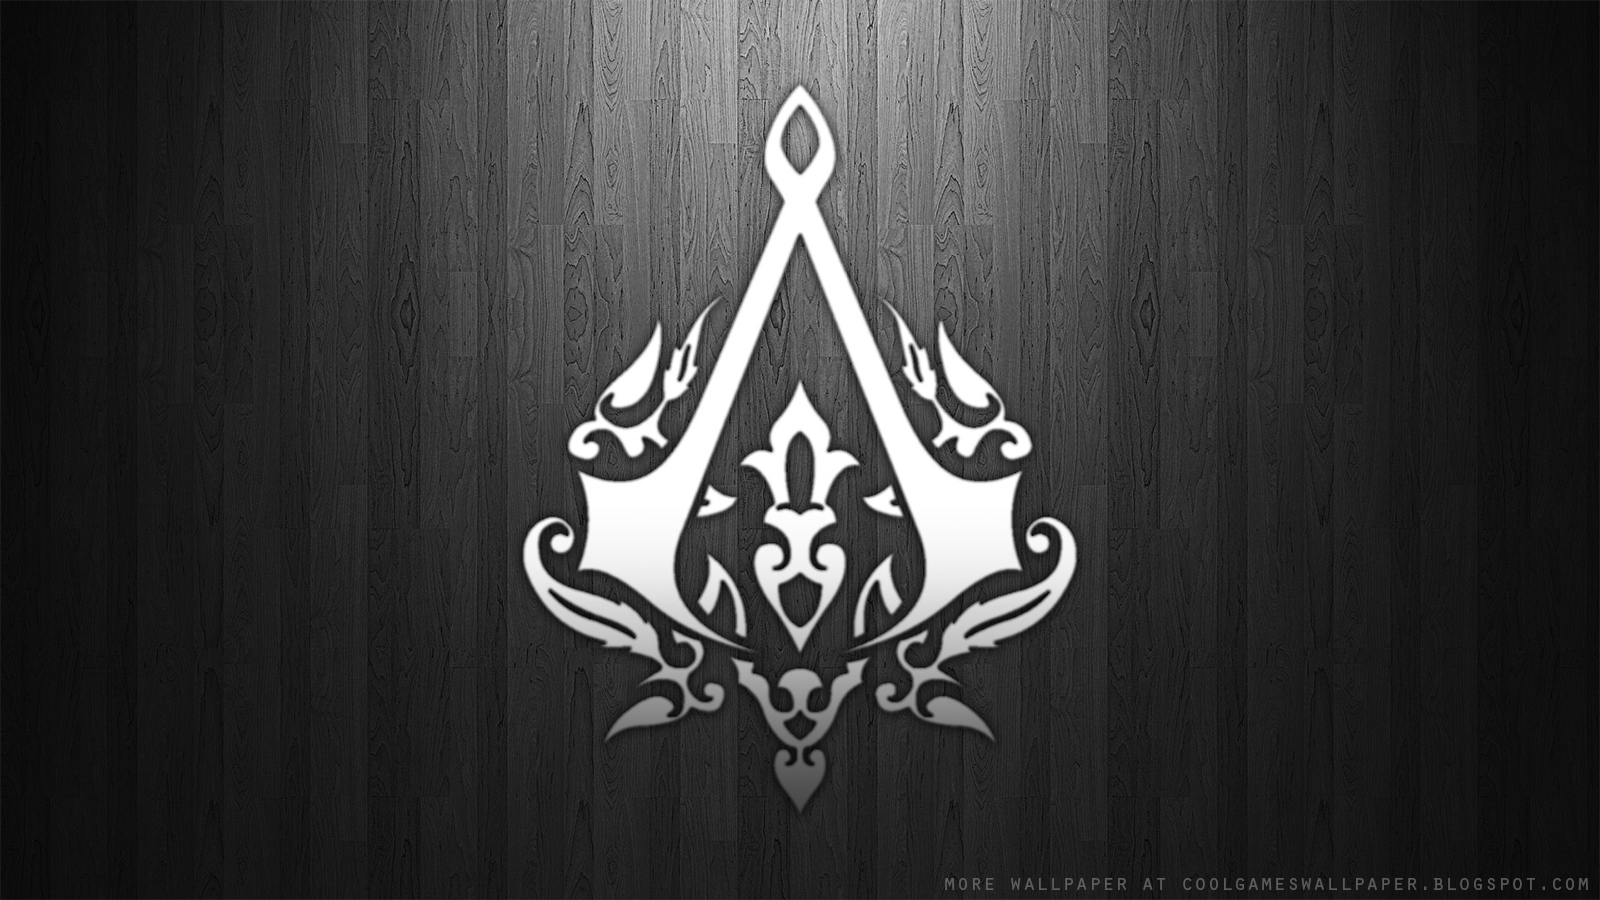 Assassin's Creed 3 Logo Wallpaper | Game Mania Club Wallpapers: gamemaniawallpaper.blogspot.com/2013/01/assassin-creed-3-logo...